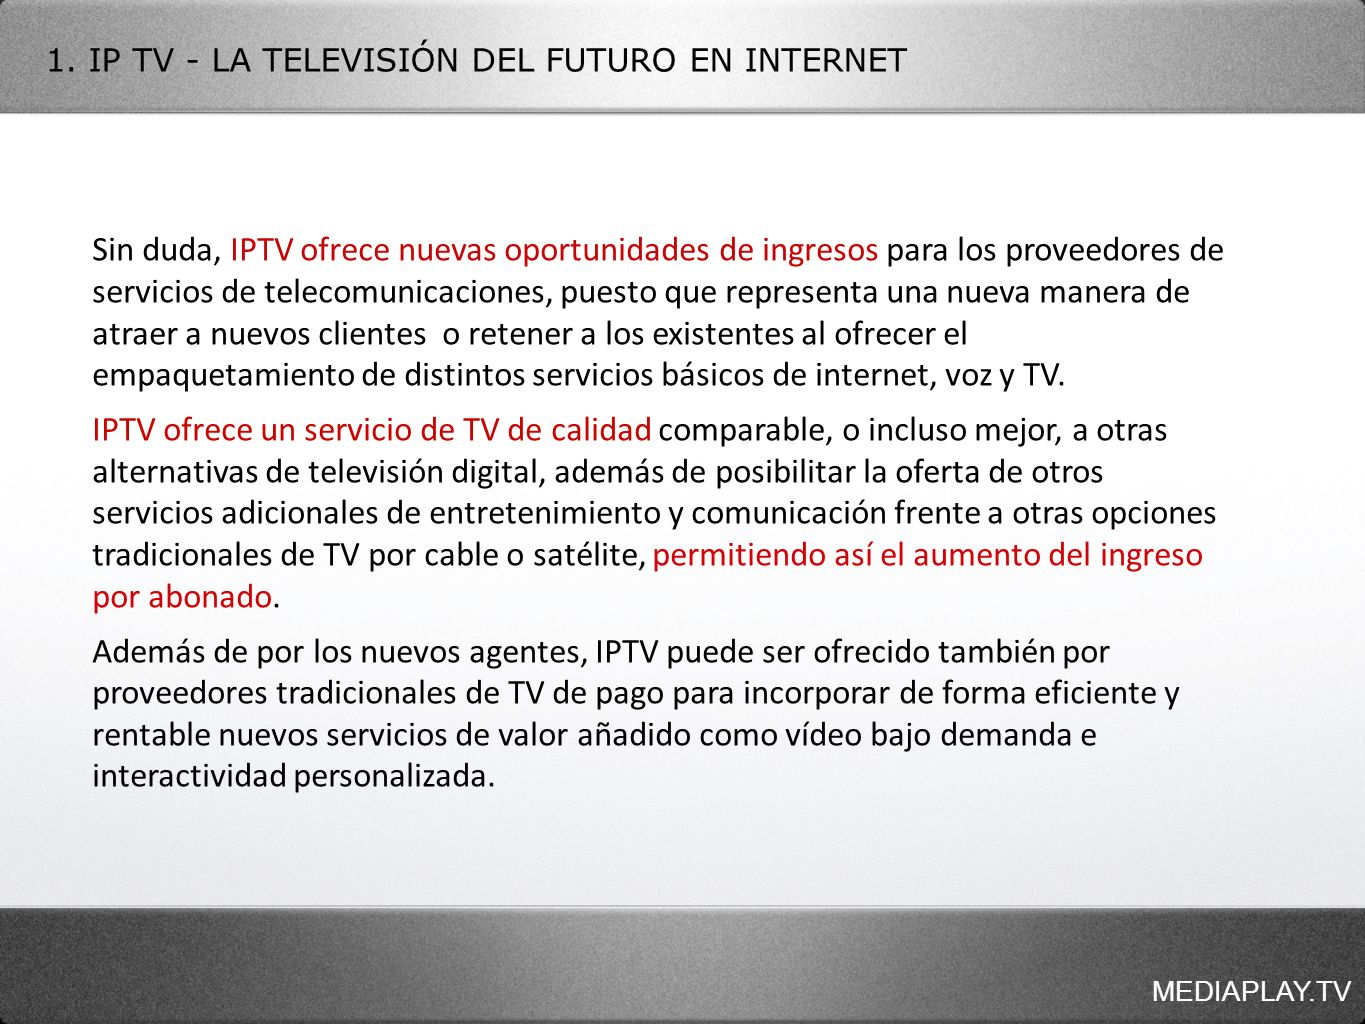 - TIEMPO REAL - VIDEO BAJO DEMANDA - PARRILLA DE PROGRAMACIÓN MEDIAPLAY.TV 3